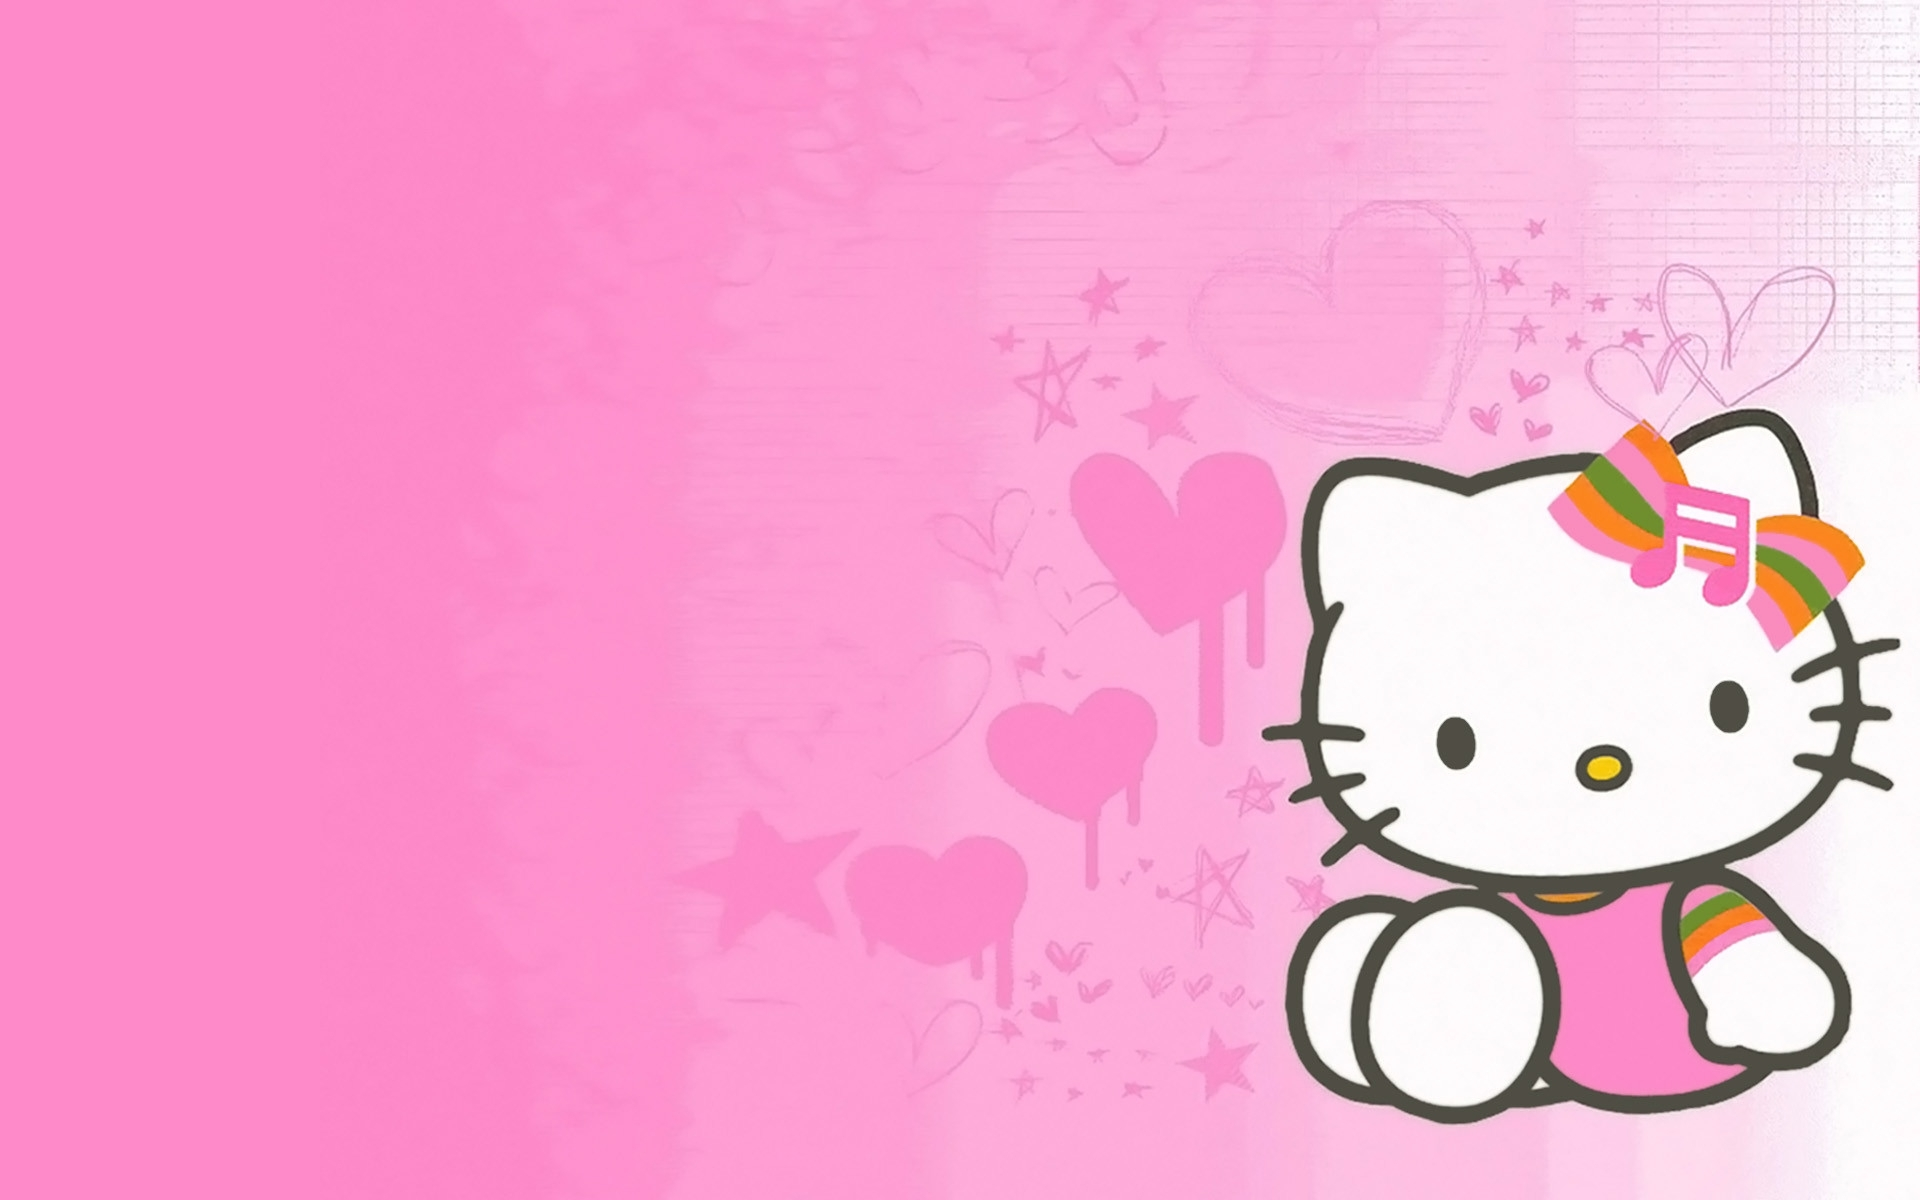 cute pink wallpaper (70+ images)